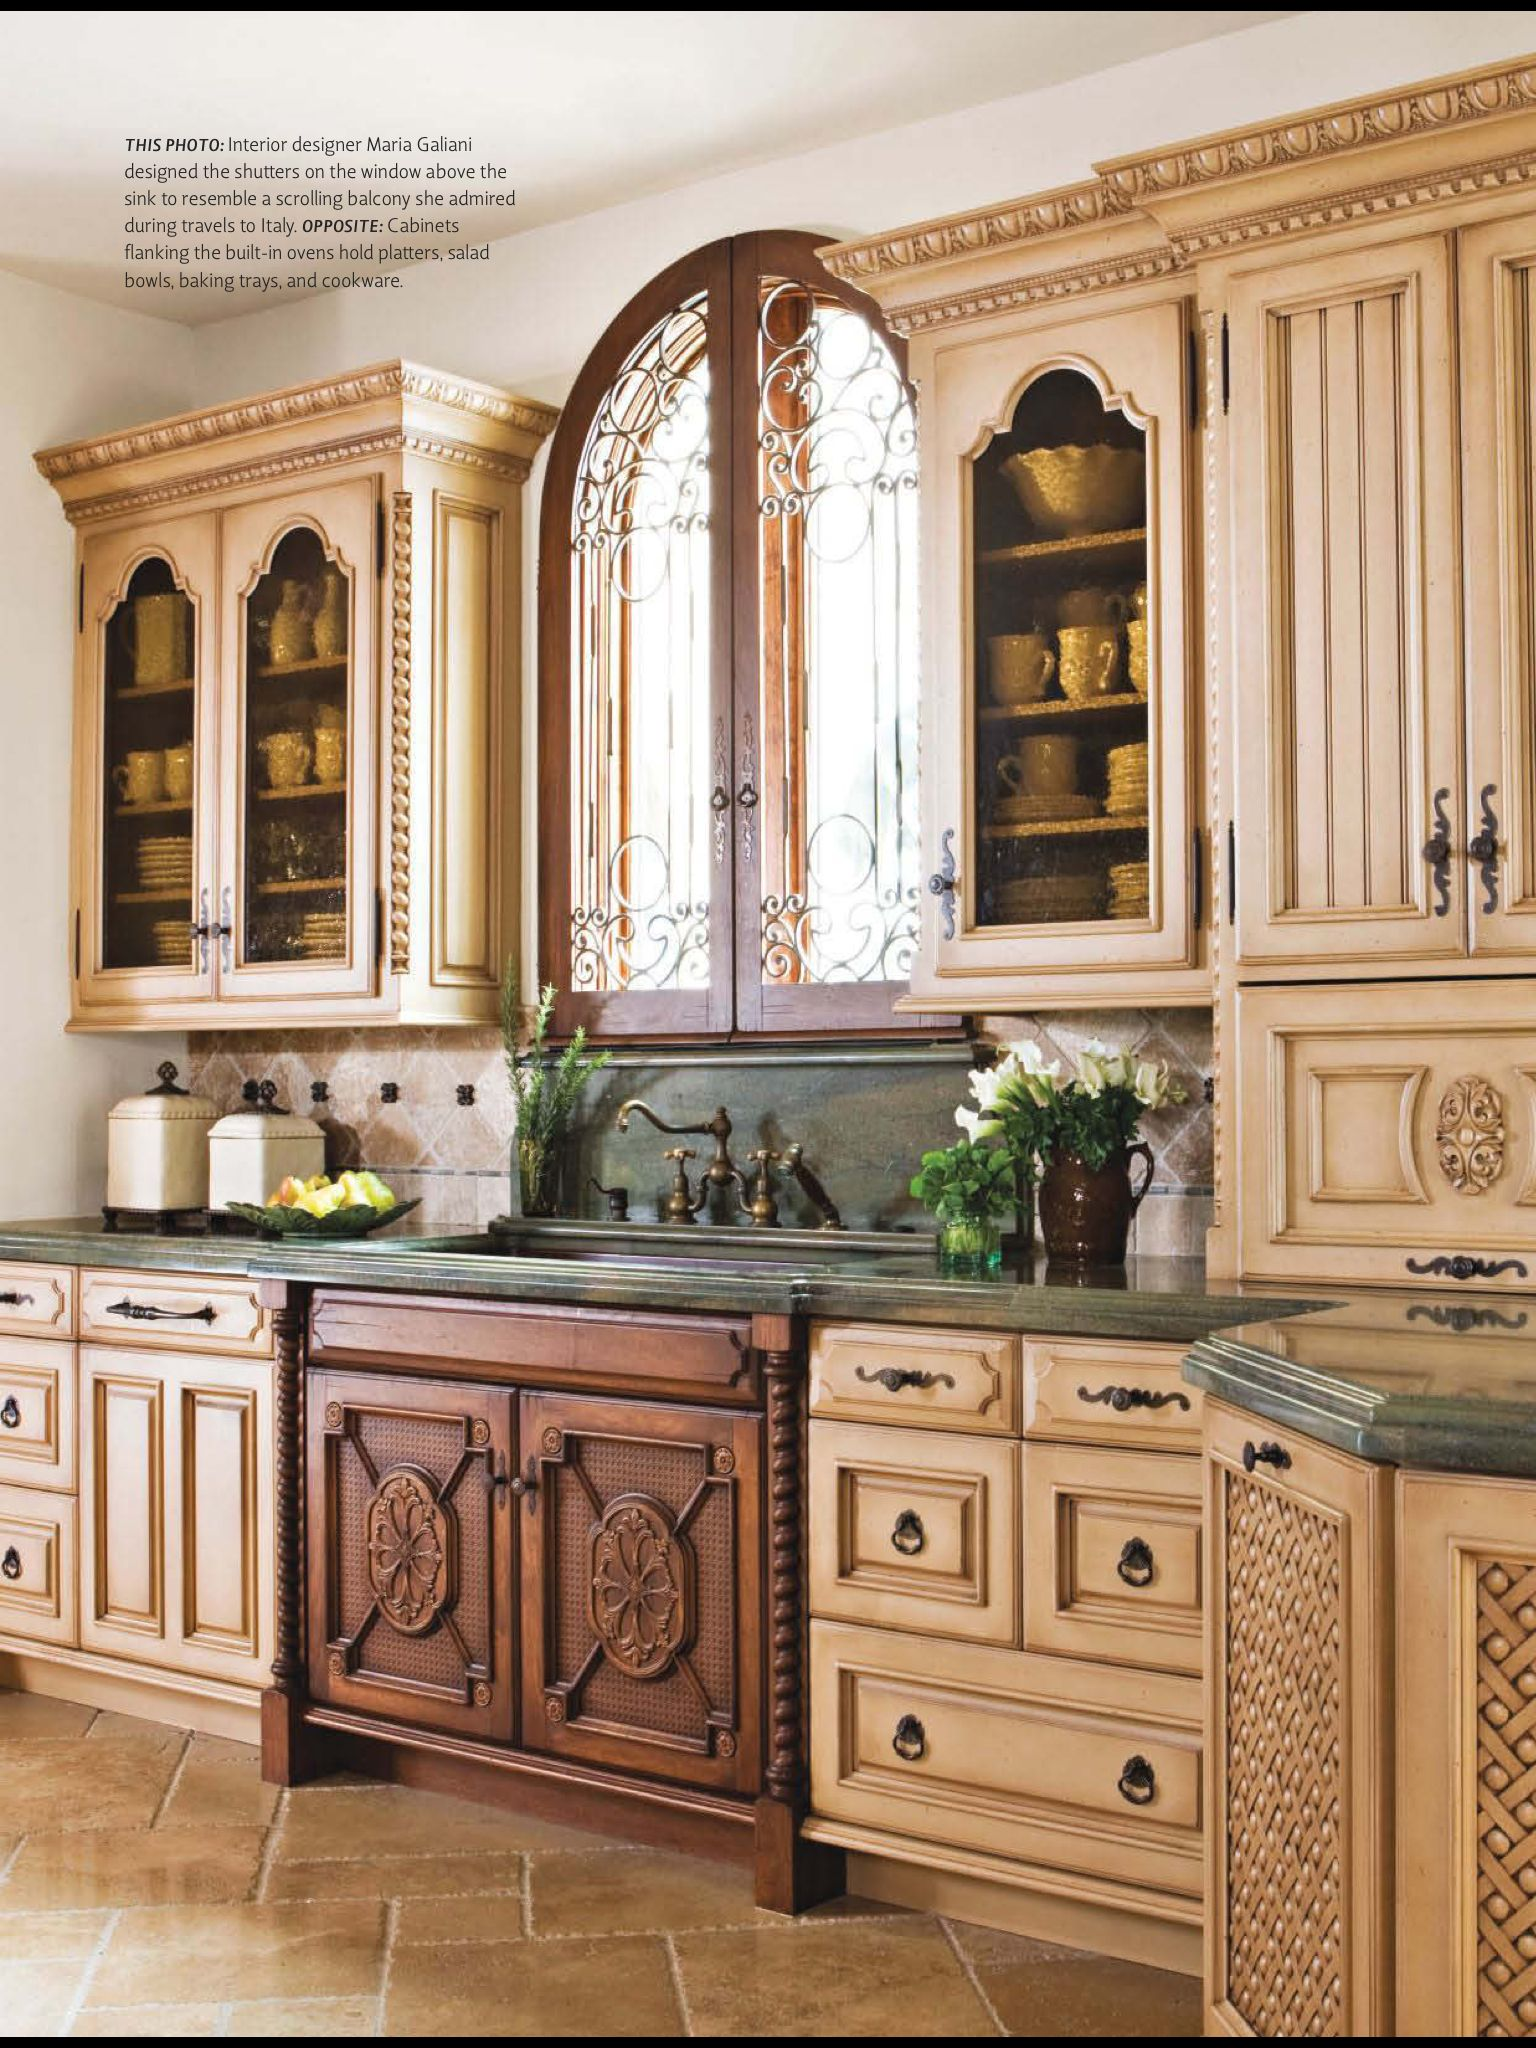 Window above kitchen cabinets  beautiful kitchen window and sink love the mix of woods too